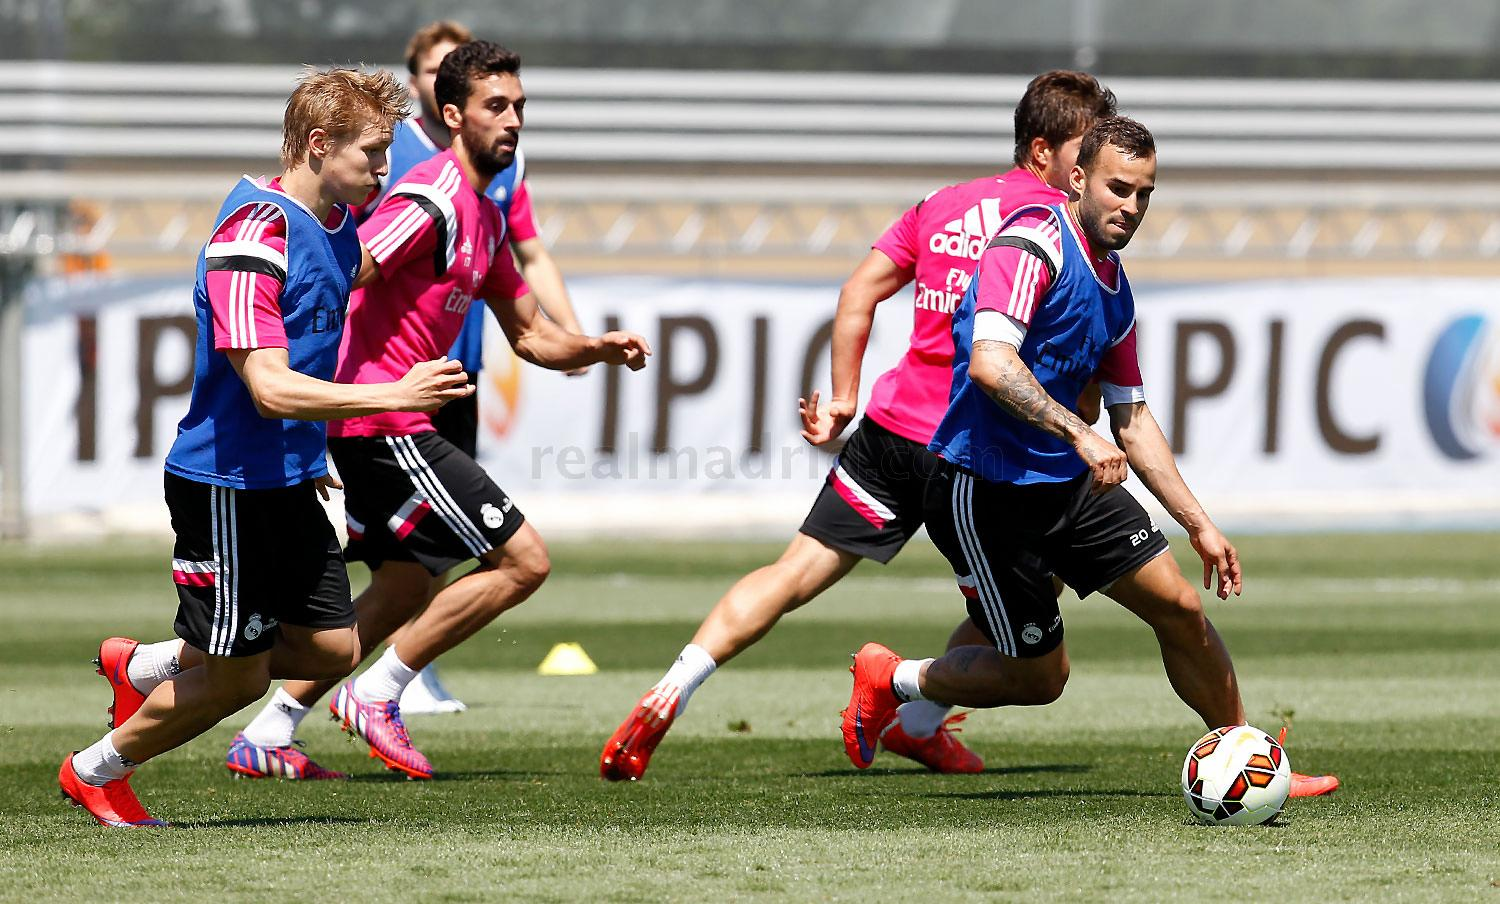 Real Madrid - Entrenamiento del Real Madrid - 06-05-2015